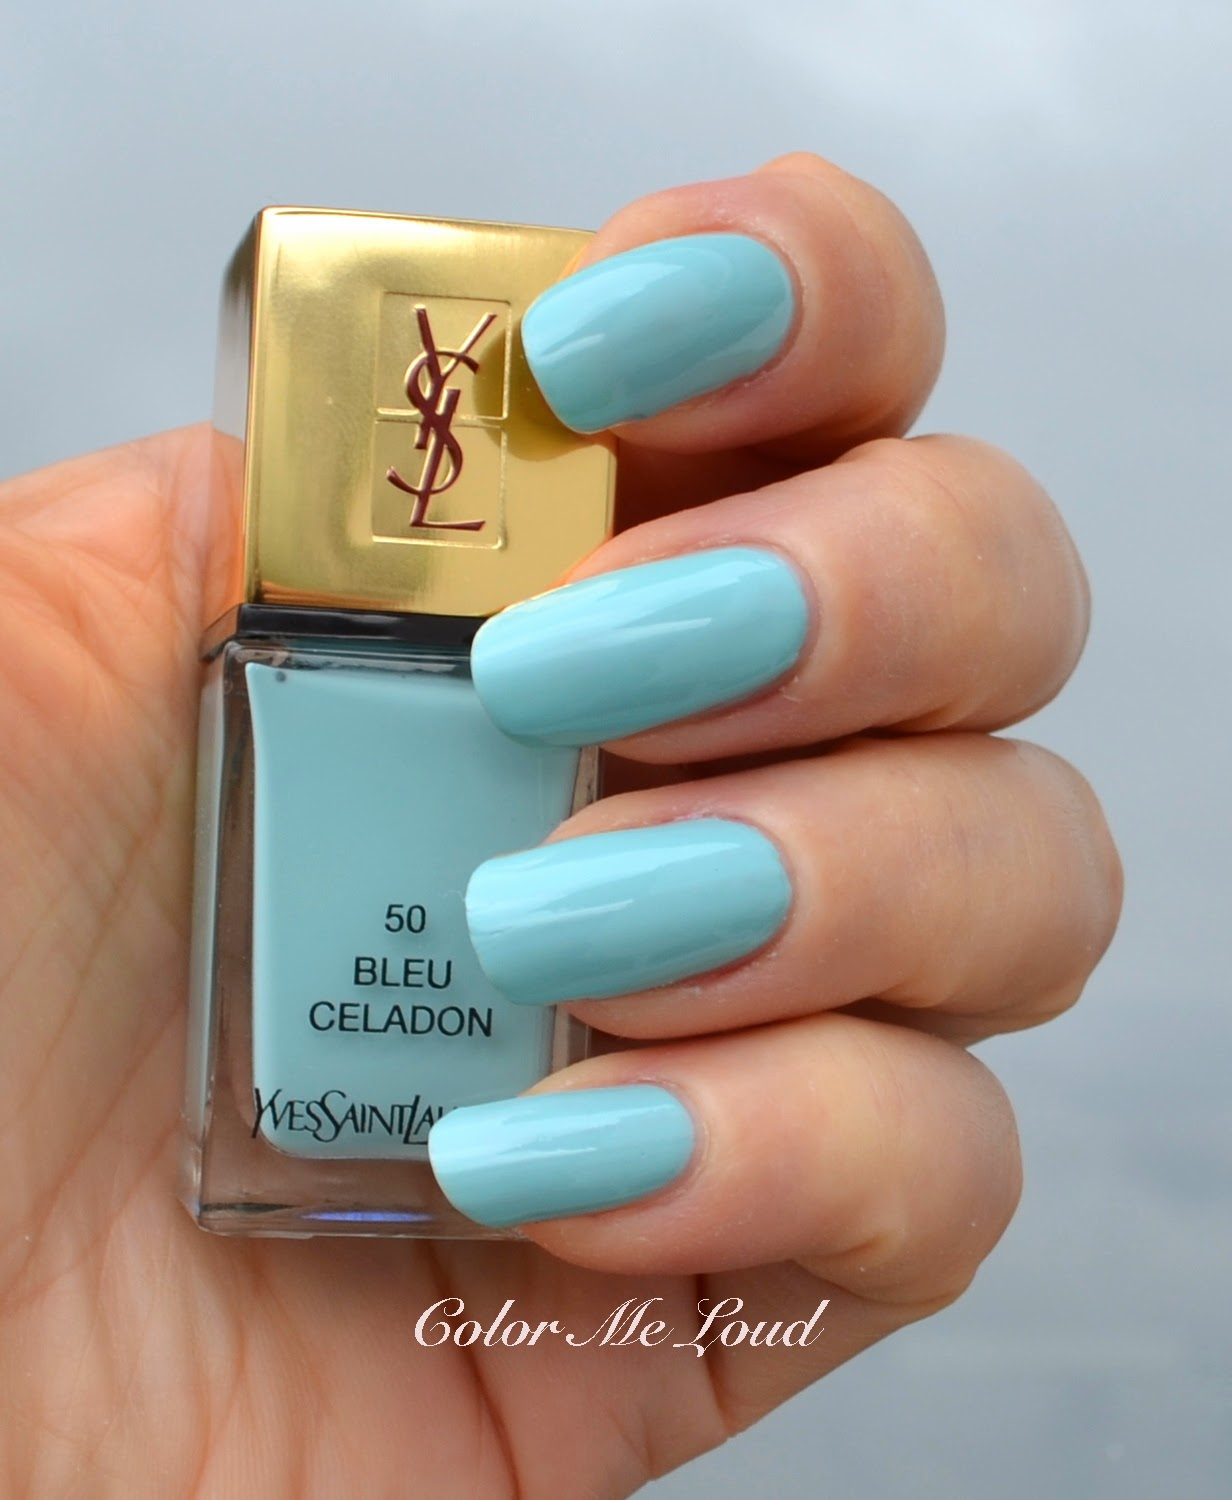 Yves Saint Laurent La Laque Couture 50 Bleu Celadon 51 Bleu Cyclades For Bleus Lumiere Summer